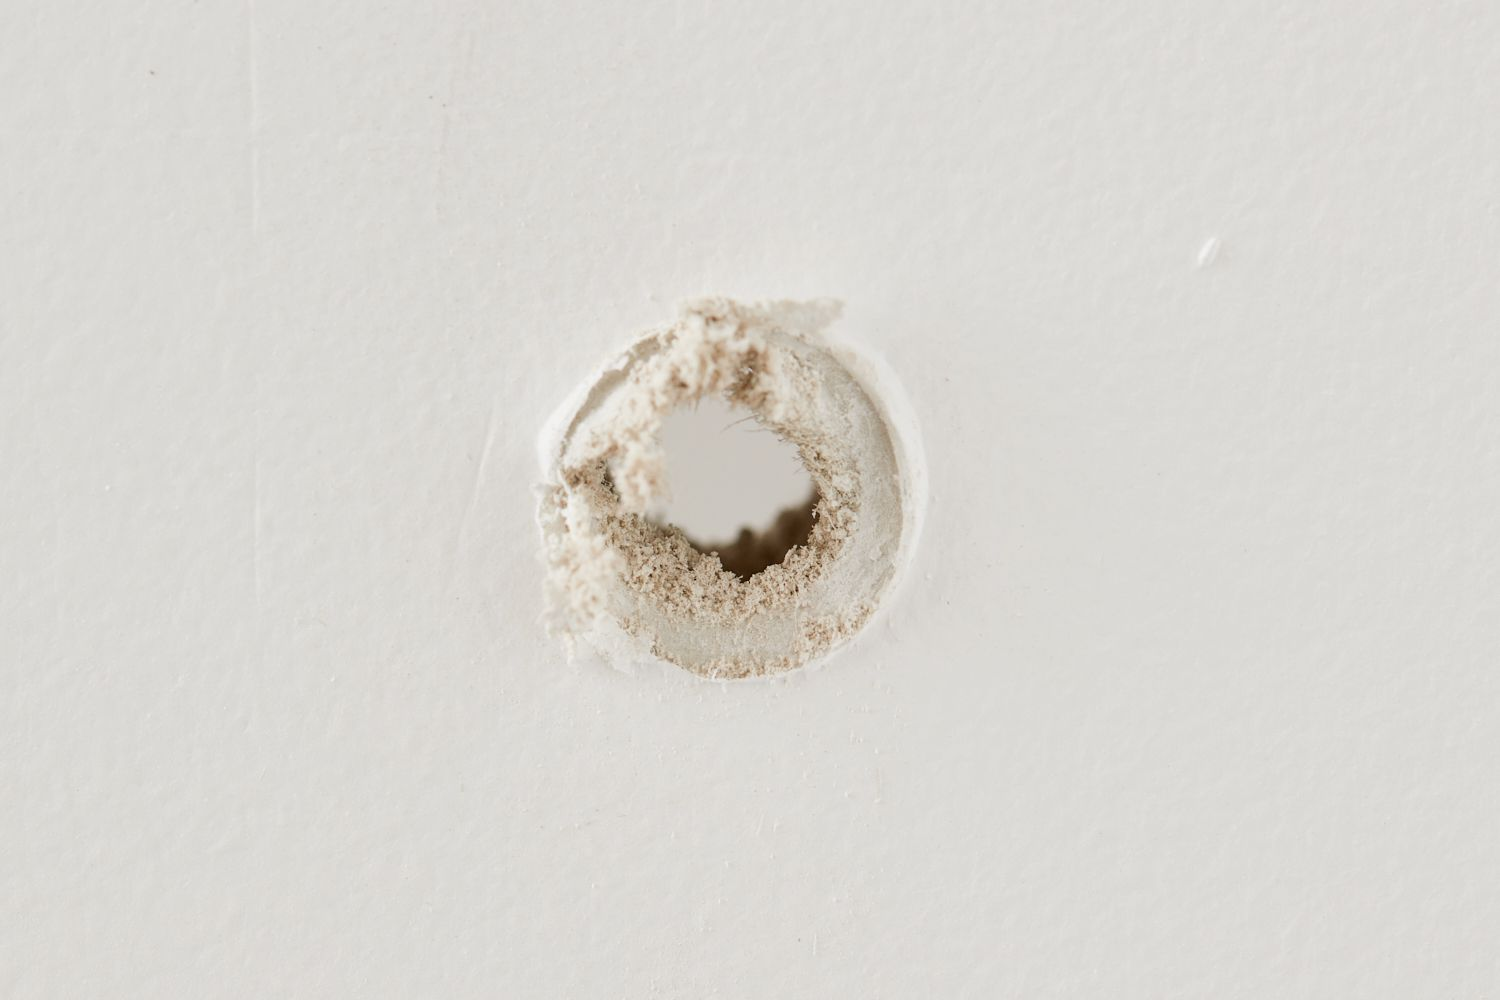 inspecting the drywall hole